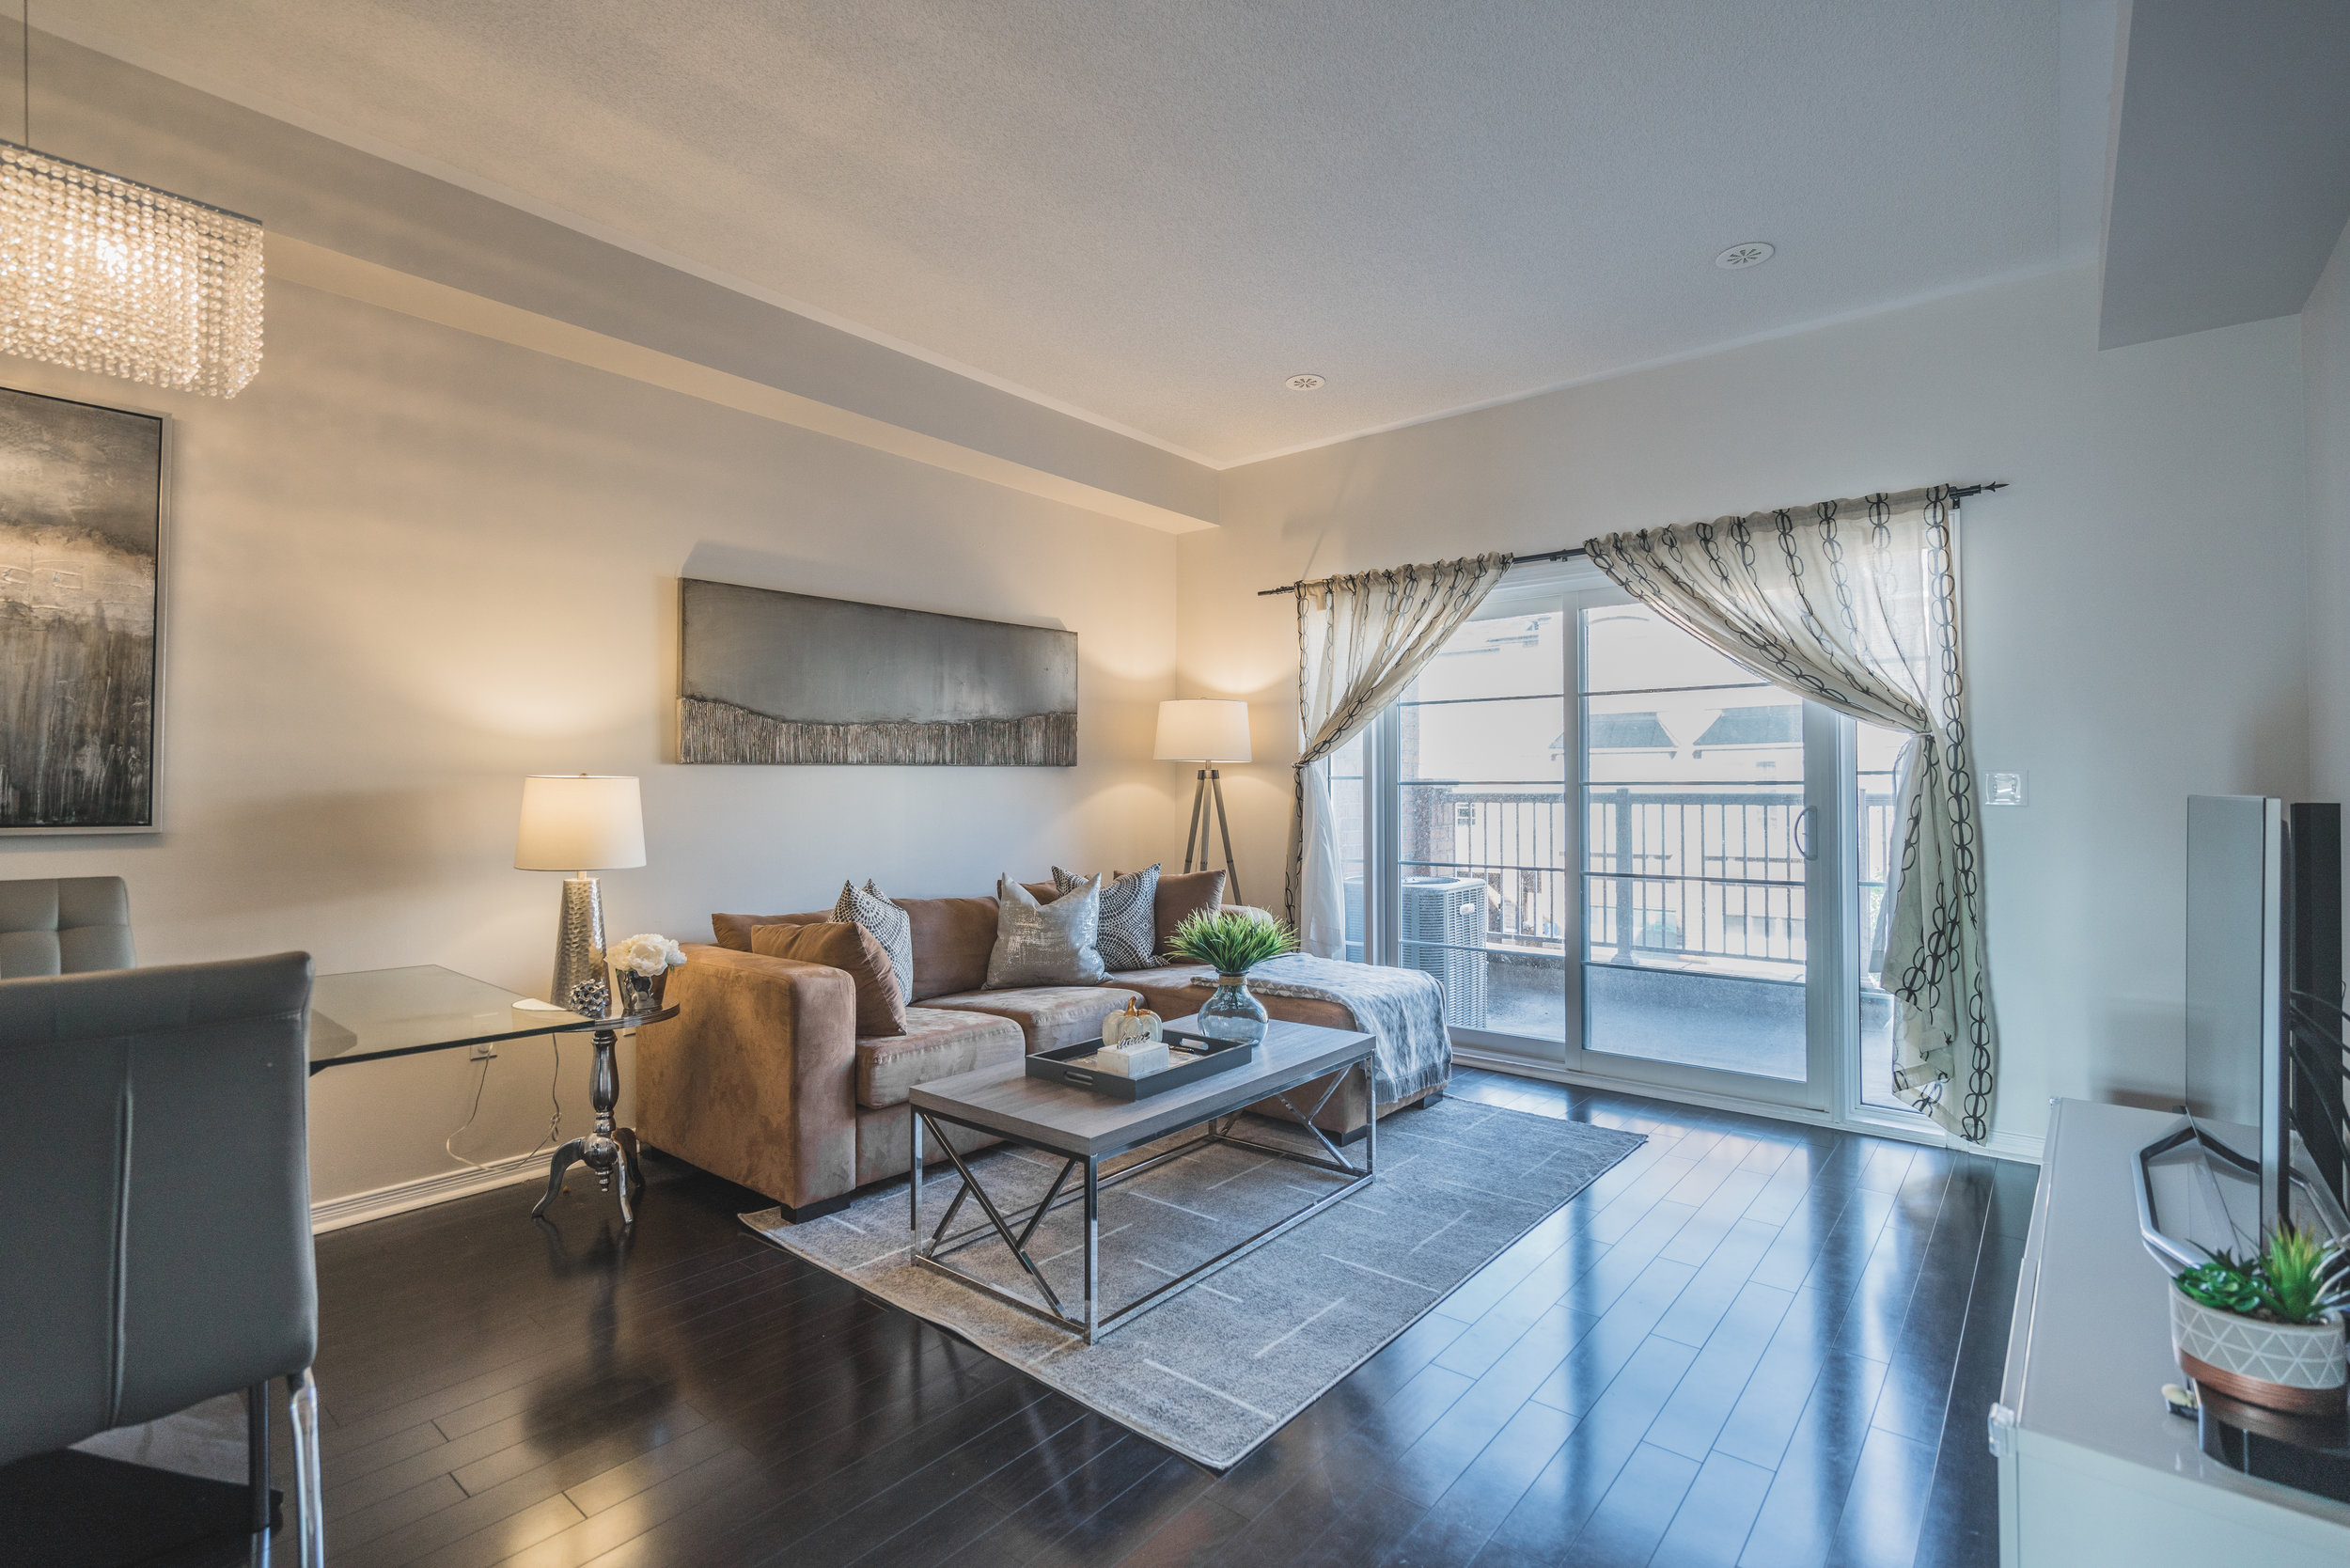 Beehive Markham occupied home staging home stager | Classy Glam Staging 2